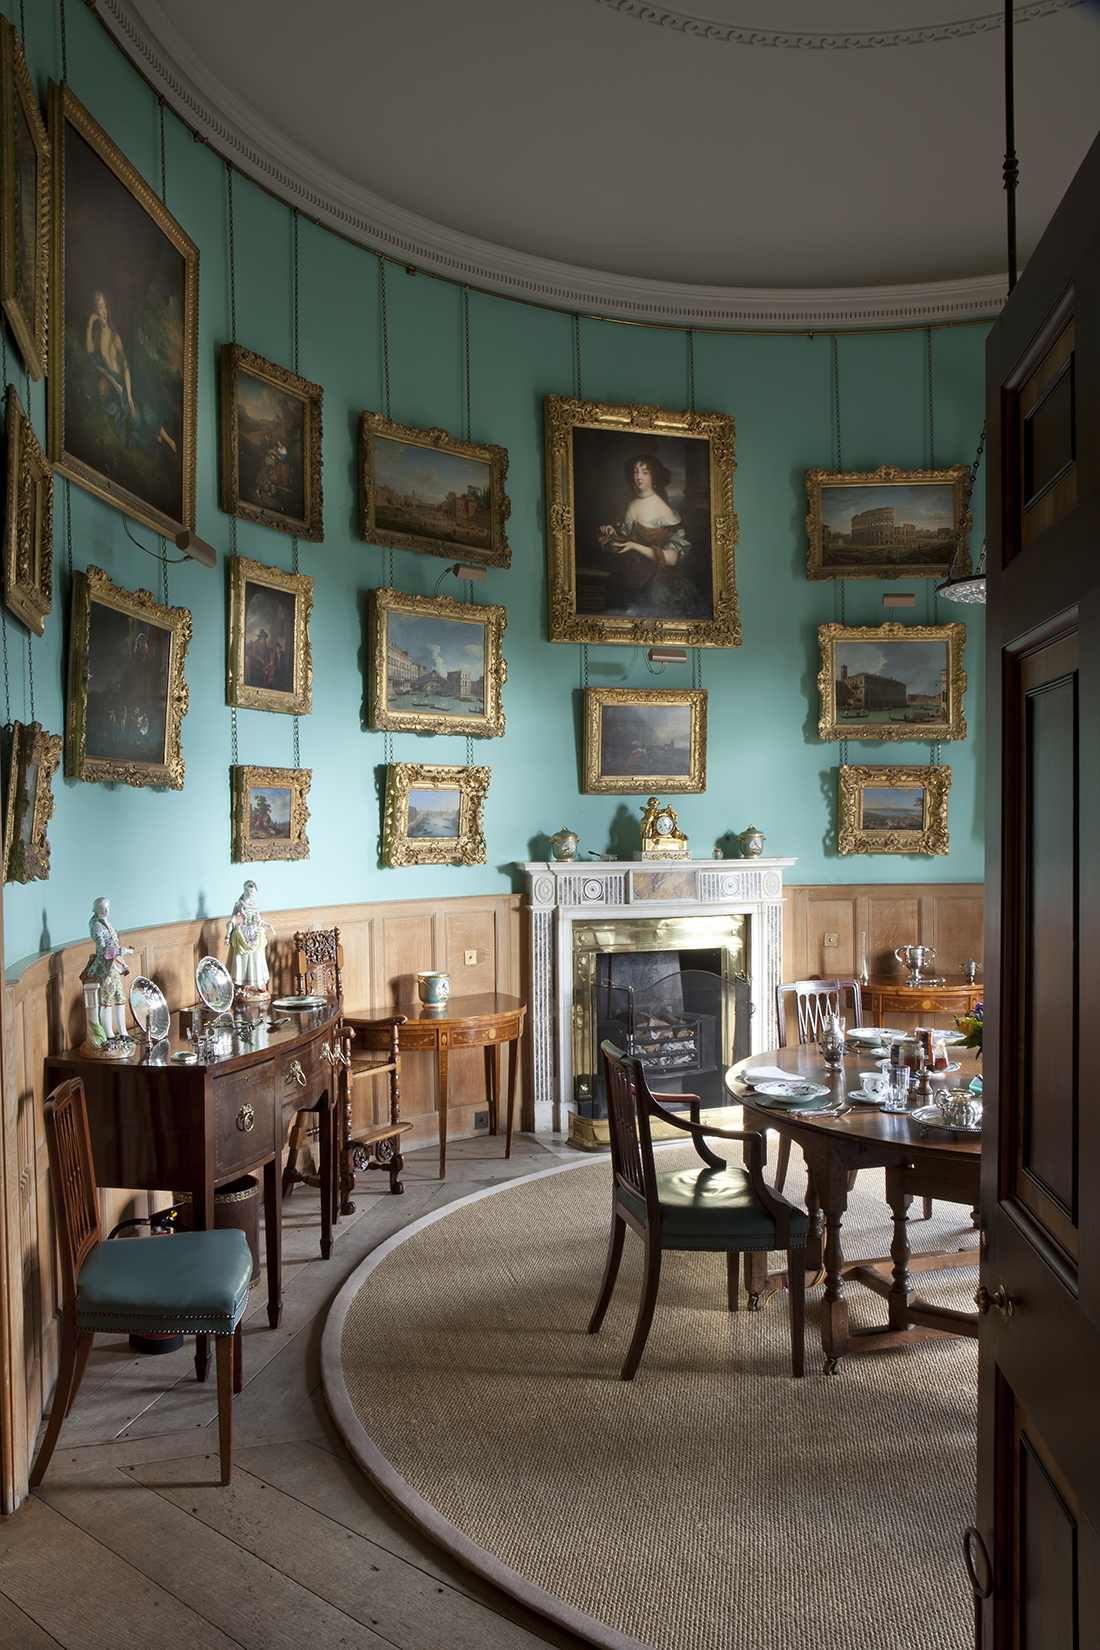 The Private Dining Room at Goodwood House. ©James Fennell